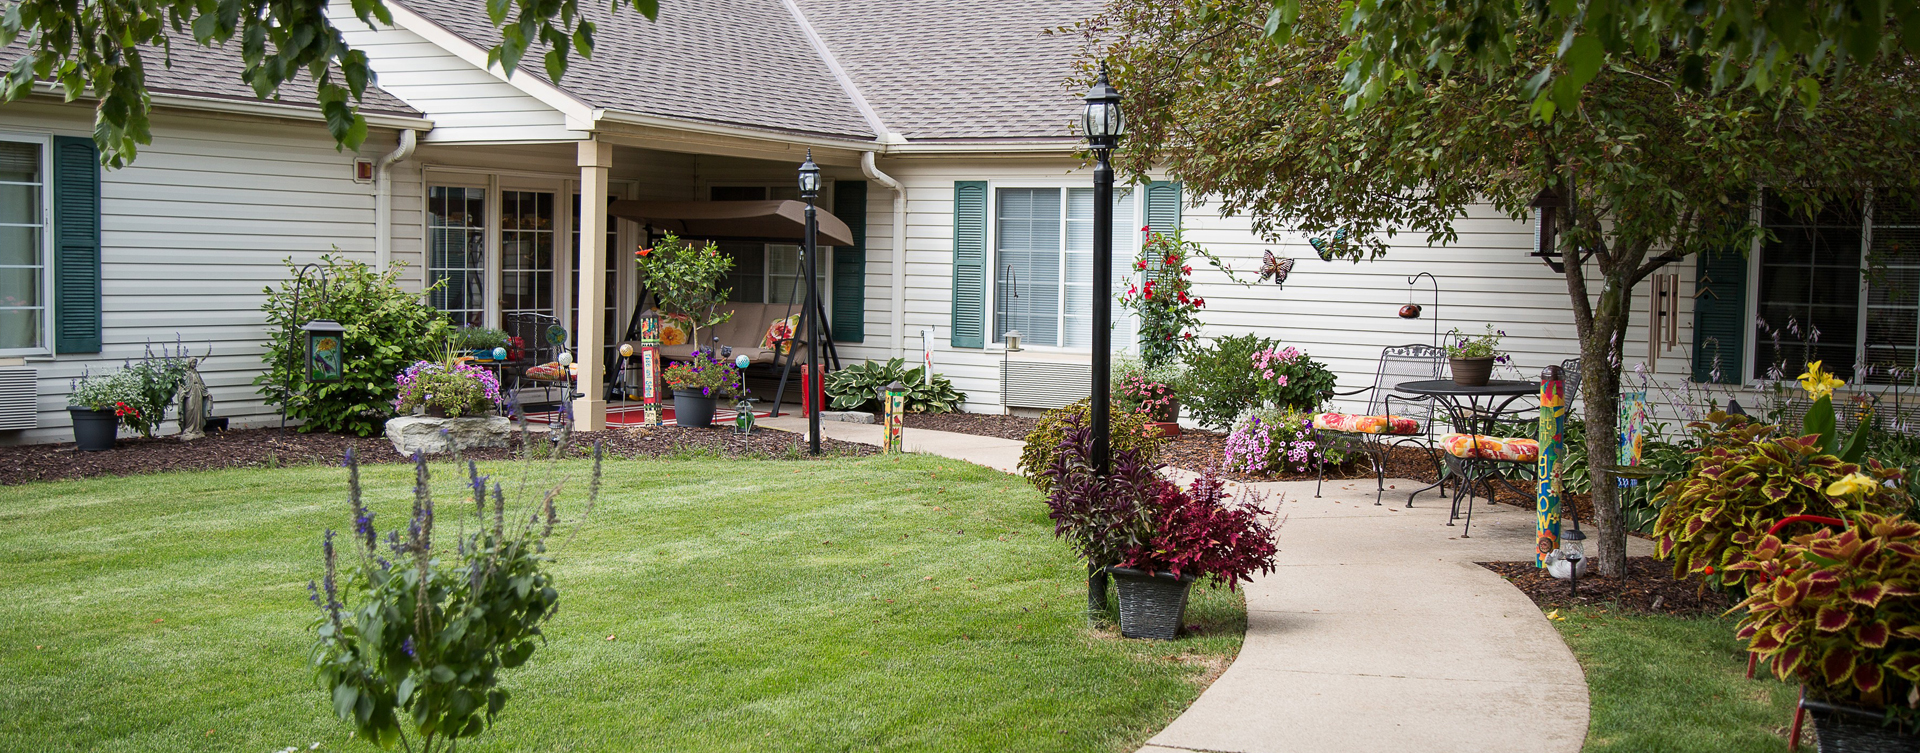 Enjoy bird watching, gardening and barbecuing in our courtyard at Bickford of Burlington